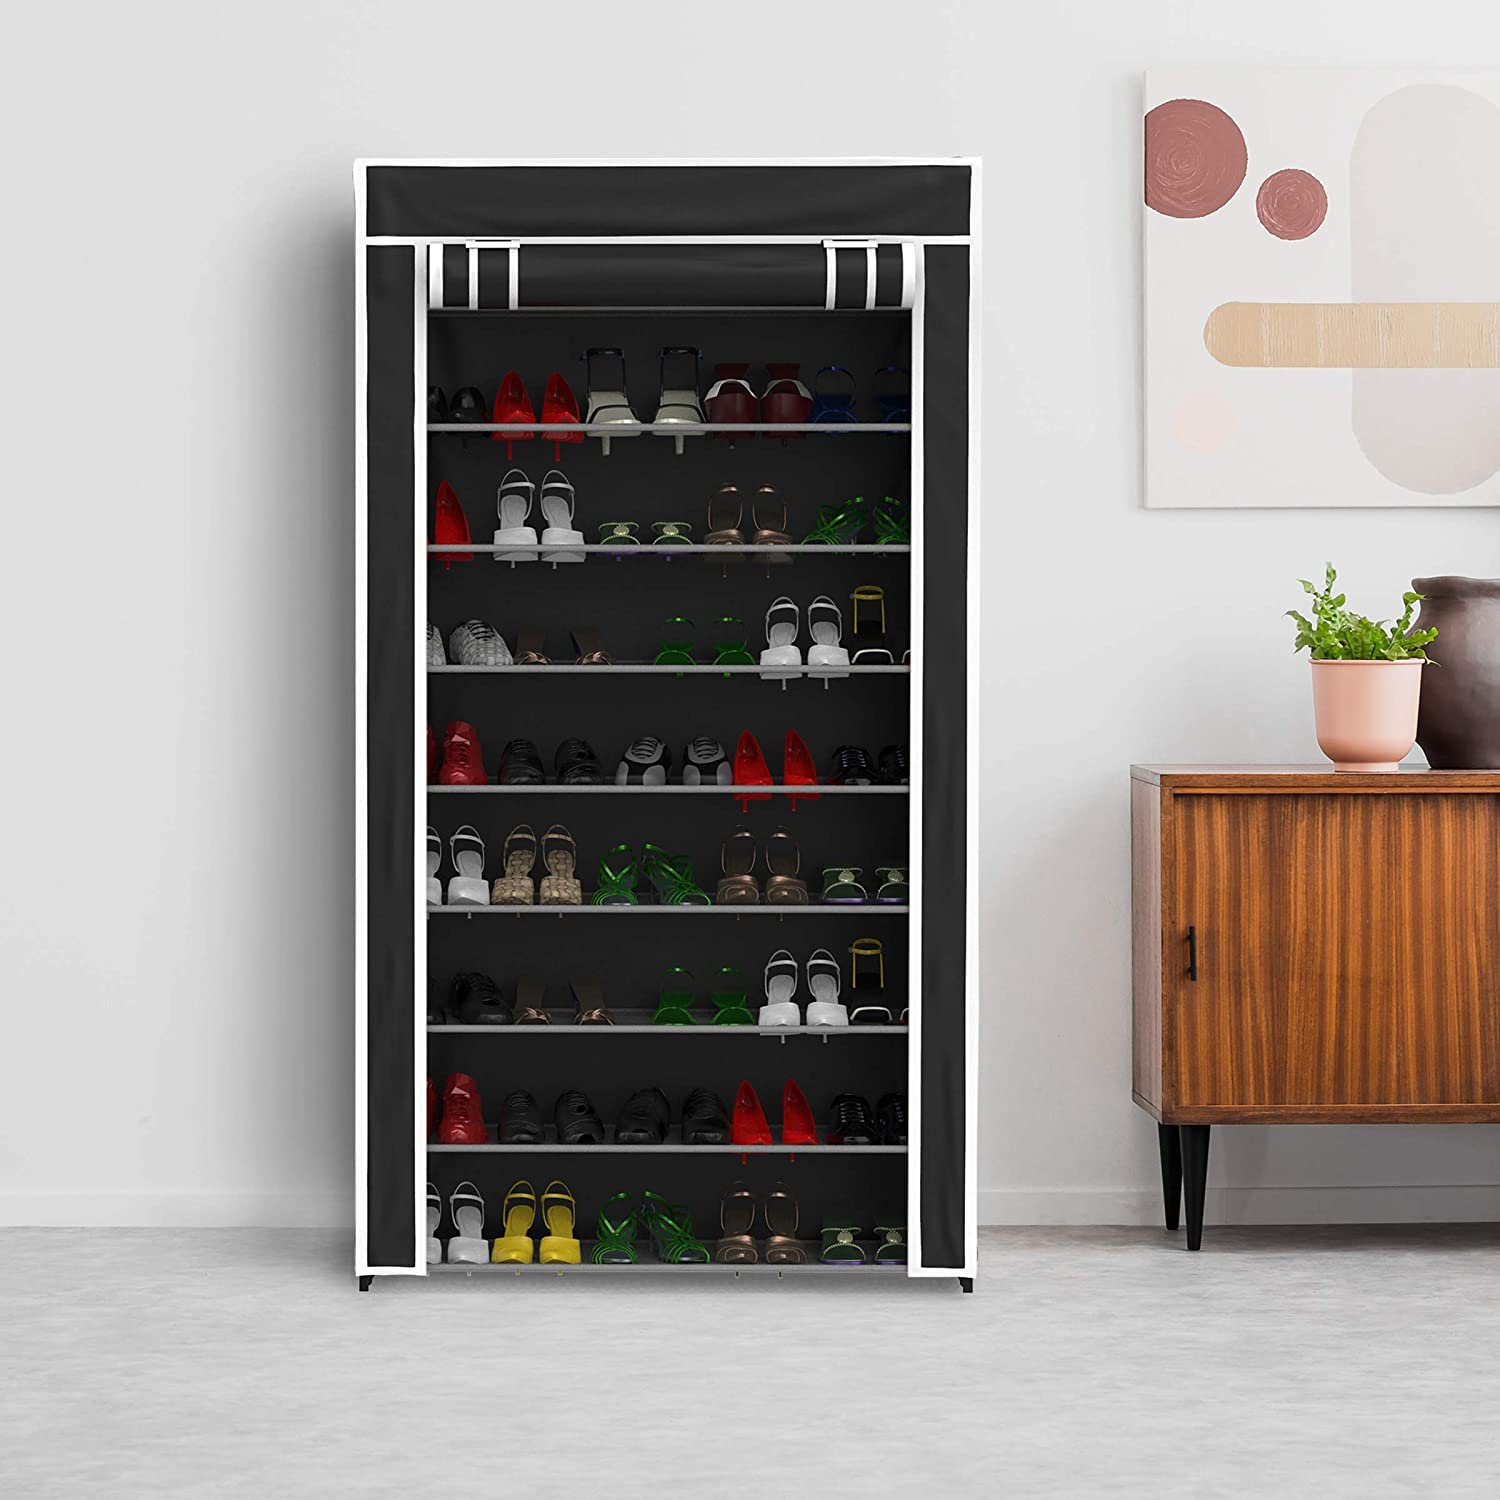 Lavish Home Tiered Shoe Rack with Dust Free Standing Vertical Footwear Organizer with Dustproof, Non-Woven Fabric Cover and Metal Frame